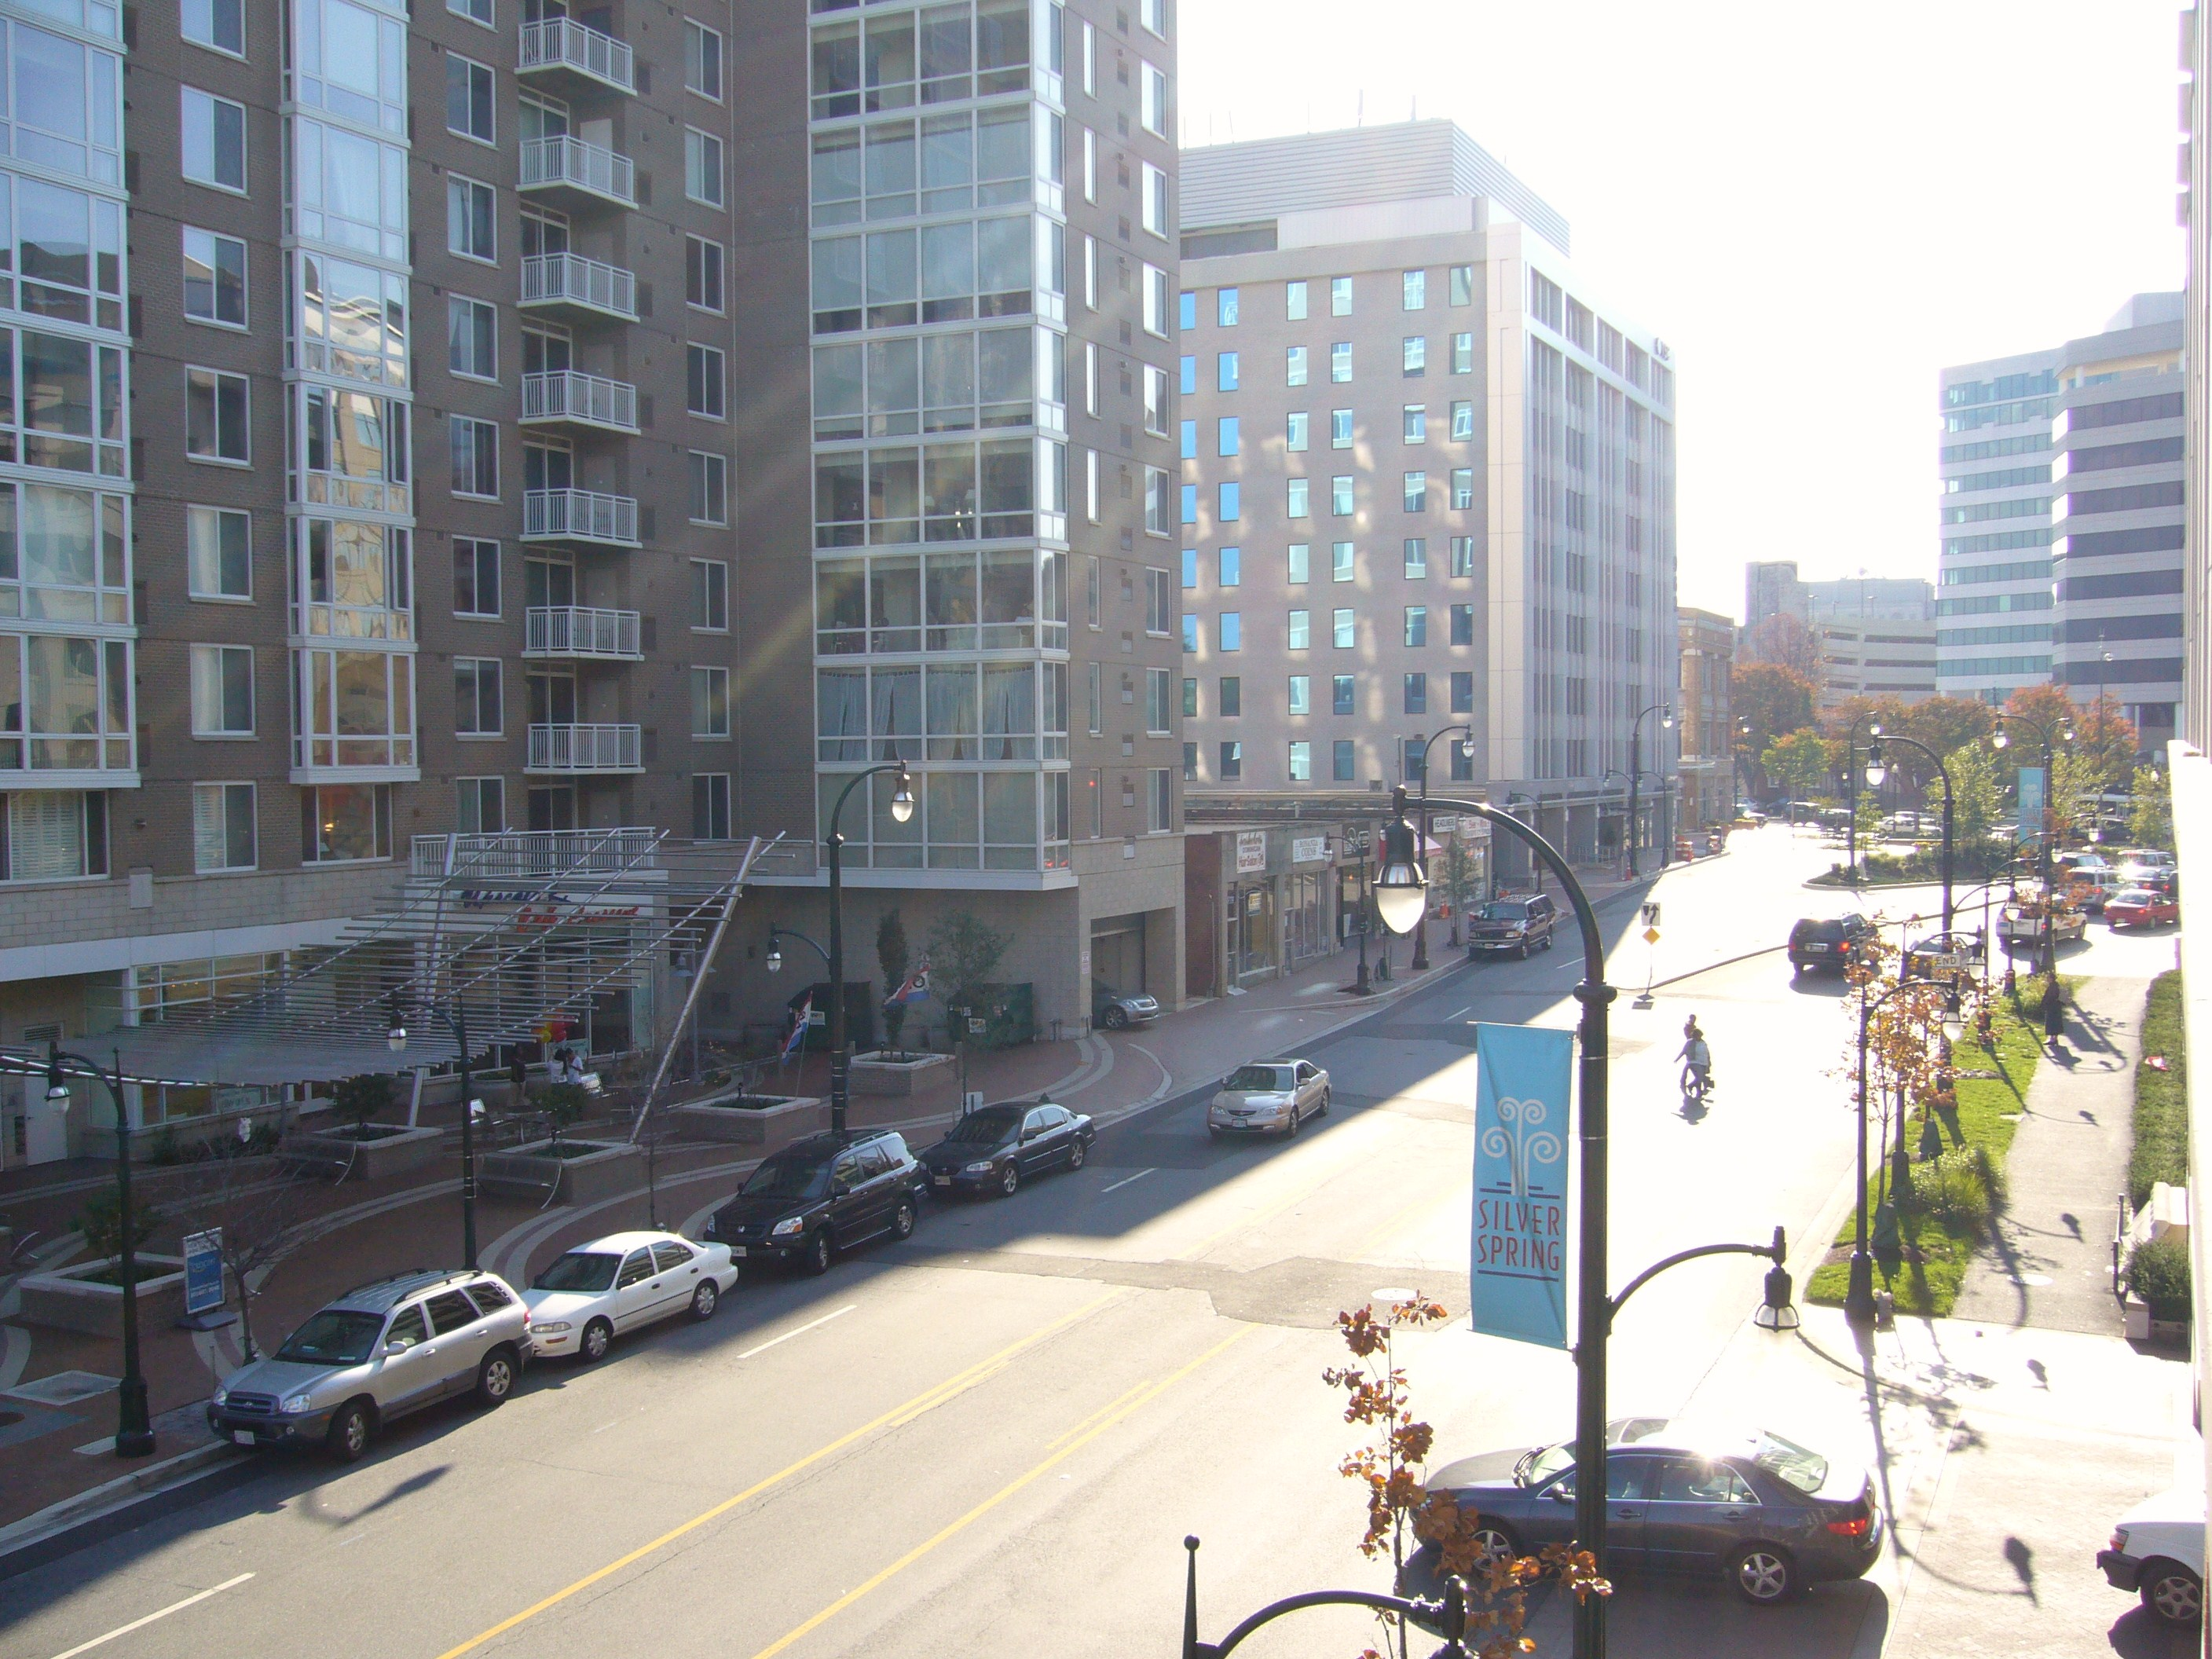 View Of Wayne Street In Downown Silver Spring, Maryland On A Sunny Day. Downtown  Silver Spring